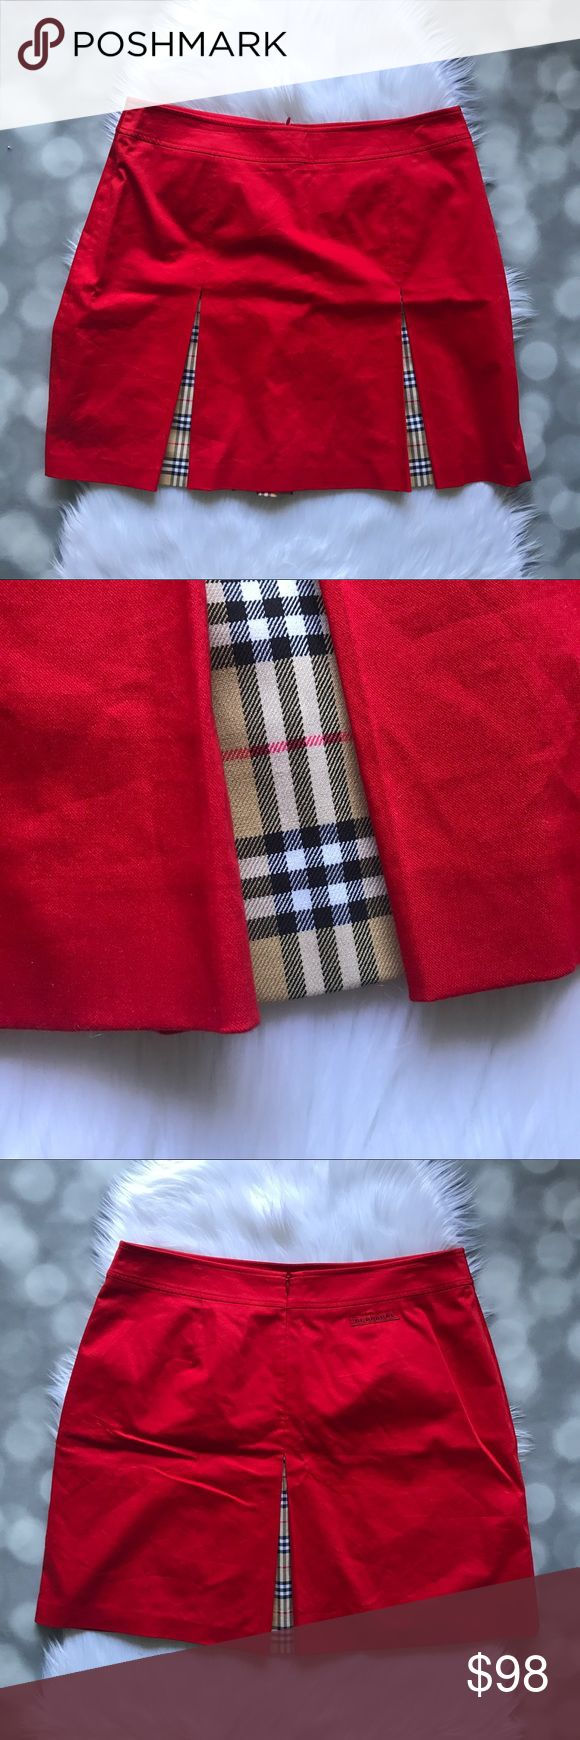 """Burberry Golf Red Pleated Skirt Gorgeous pleated a-line skirt by Burberry Golf. Bright red with pleats and the classic Burberry print peeking through. Zips up the back. Laying flat, waist measures 17"""" and length is 18.5"""". EUC from a smoke free home!   ⭐️no trades⭐️ ⭐️I'm open to offers and I ALWAYS send a counteroffer⭐️ ⭐️bundle and save 10% off two or more items⭐️ Burberry Skirts A-Line or Full"""